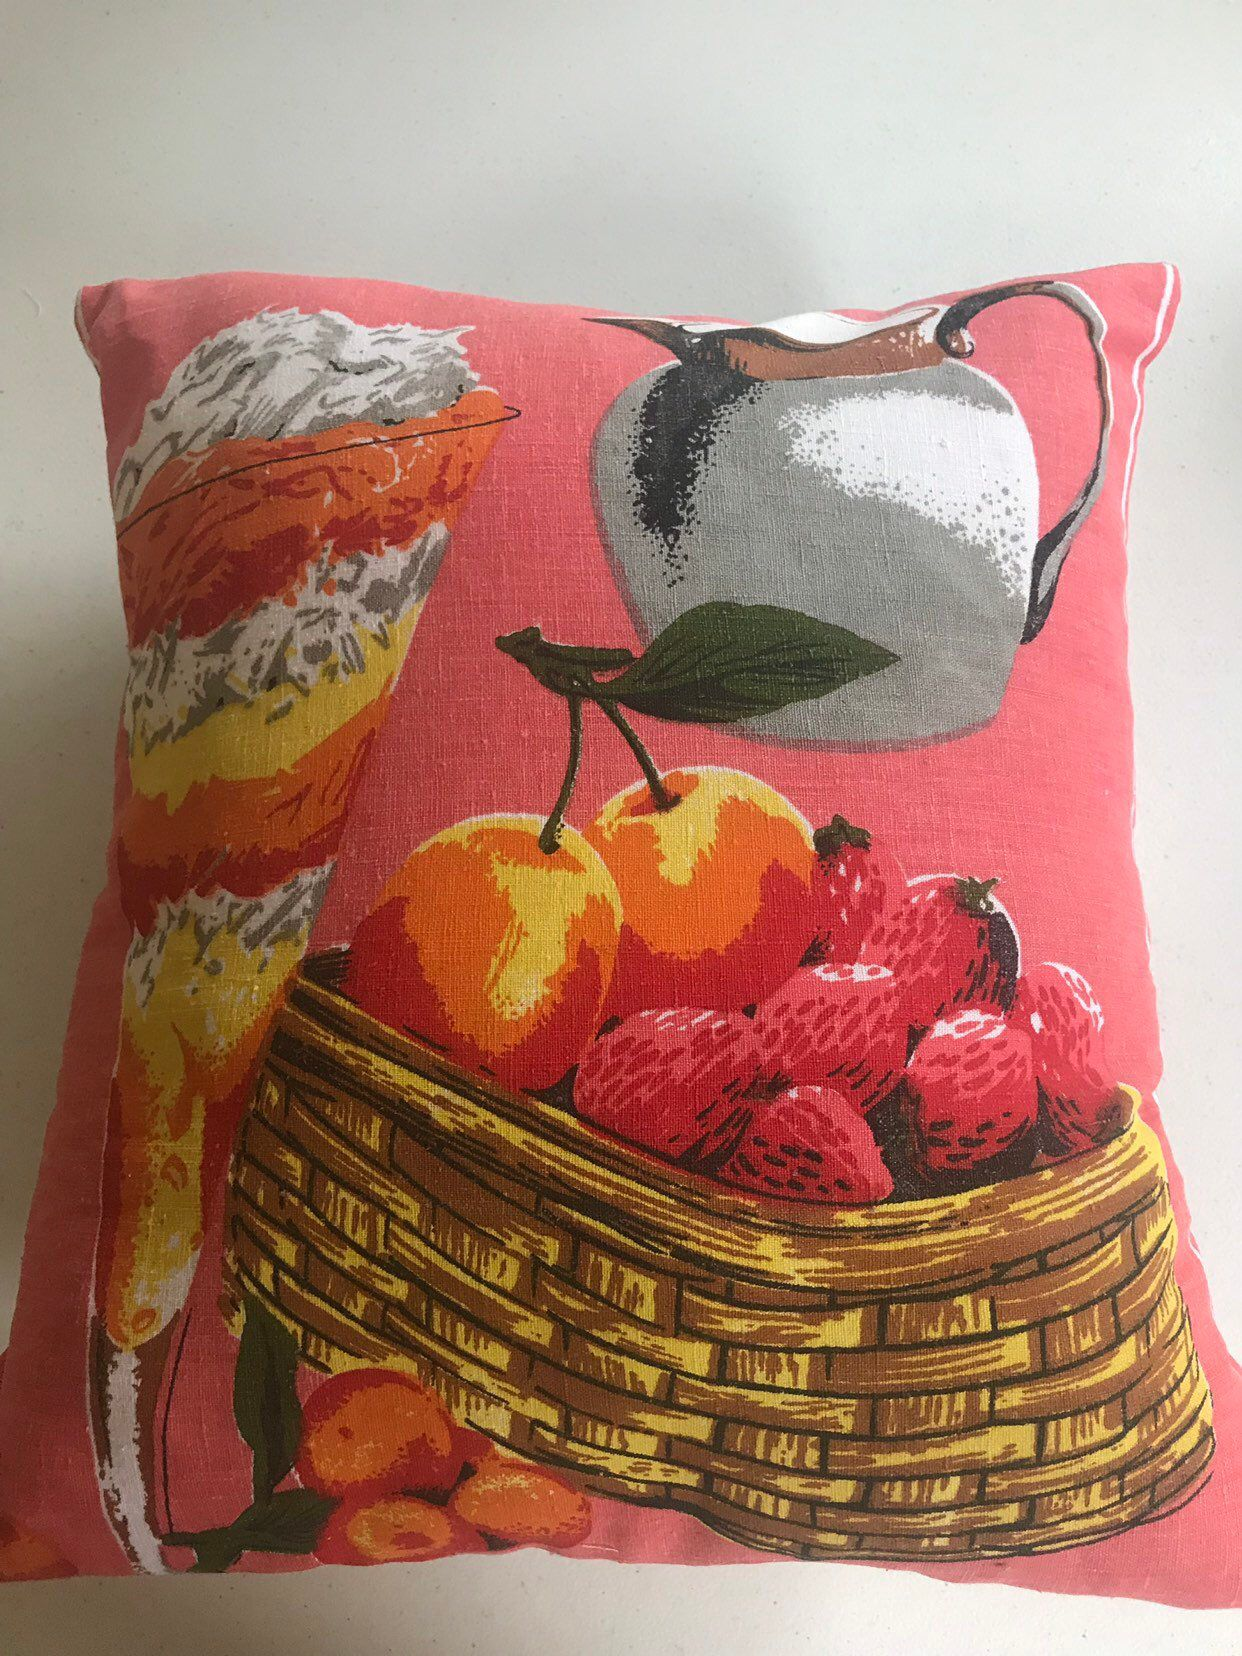 Retro Cushions Retro Cushion Cover Vintage Tea Towel Recycled Vintage Decor